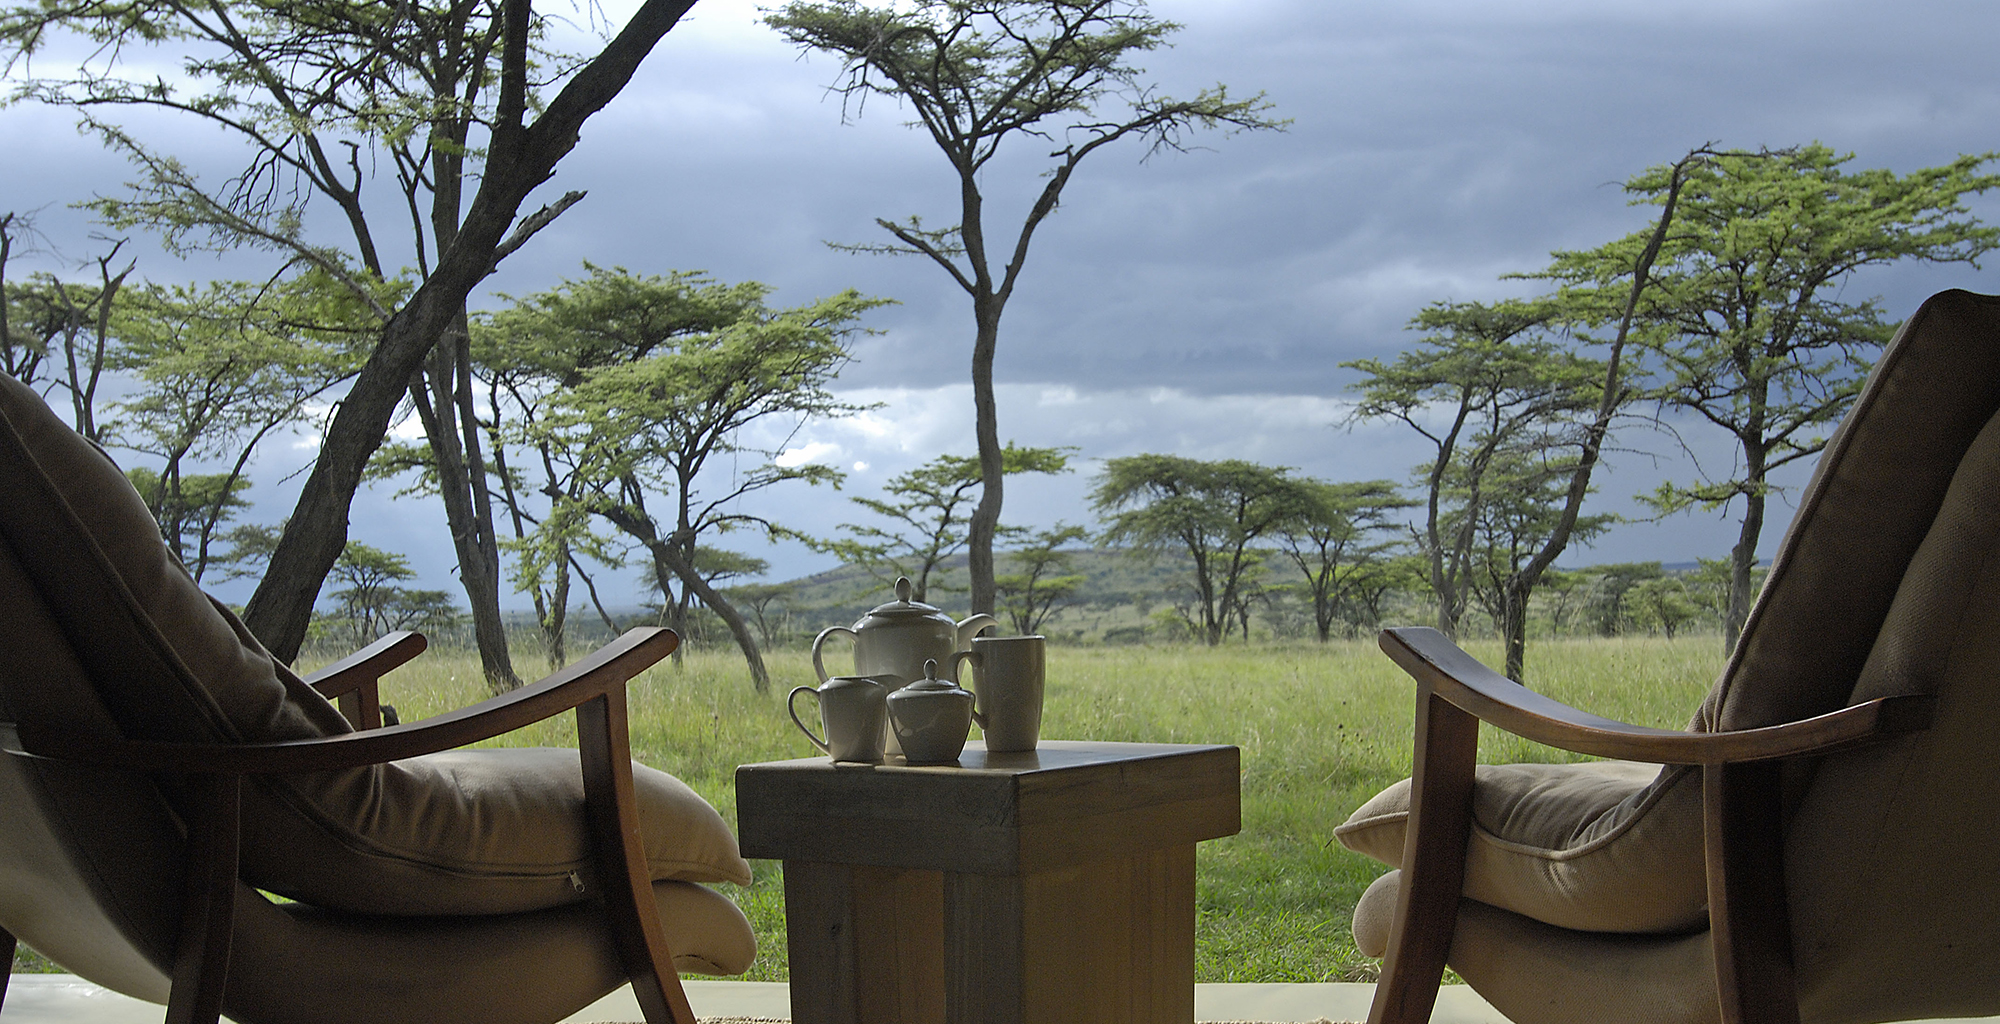 Kenya-Kicheche-Bush-Camp-Deck